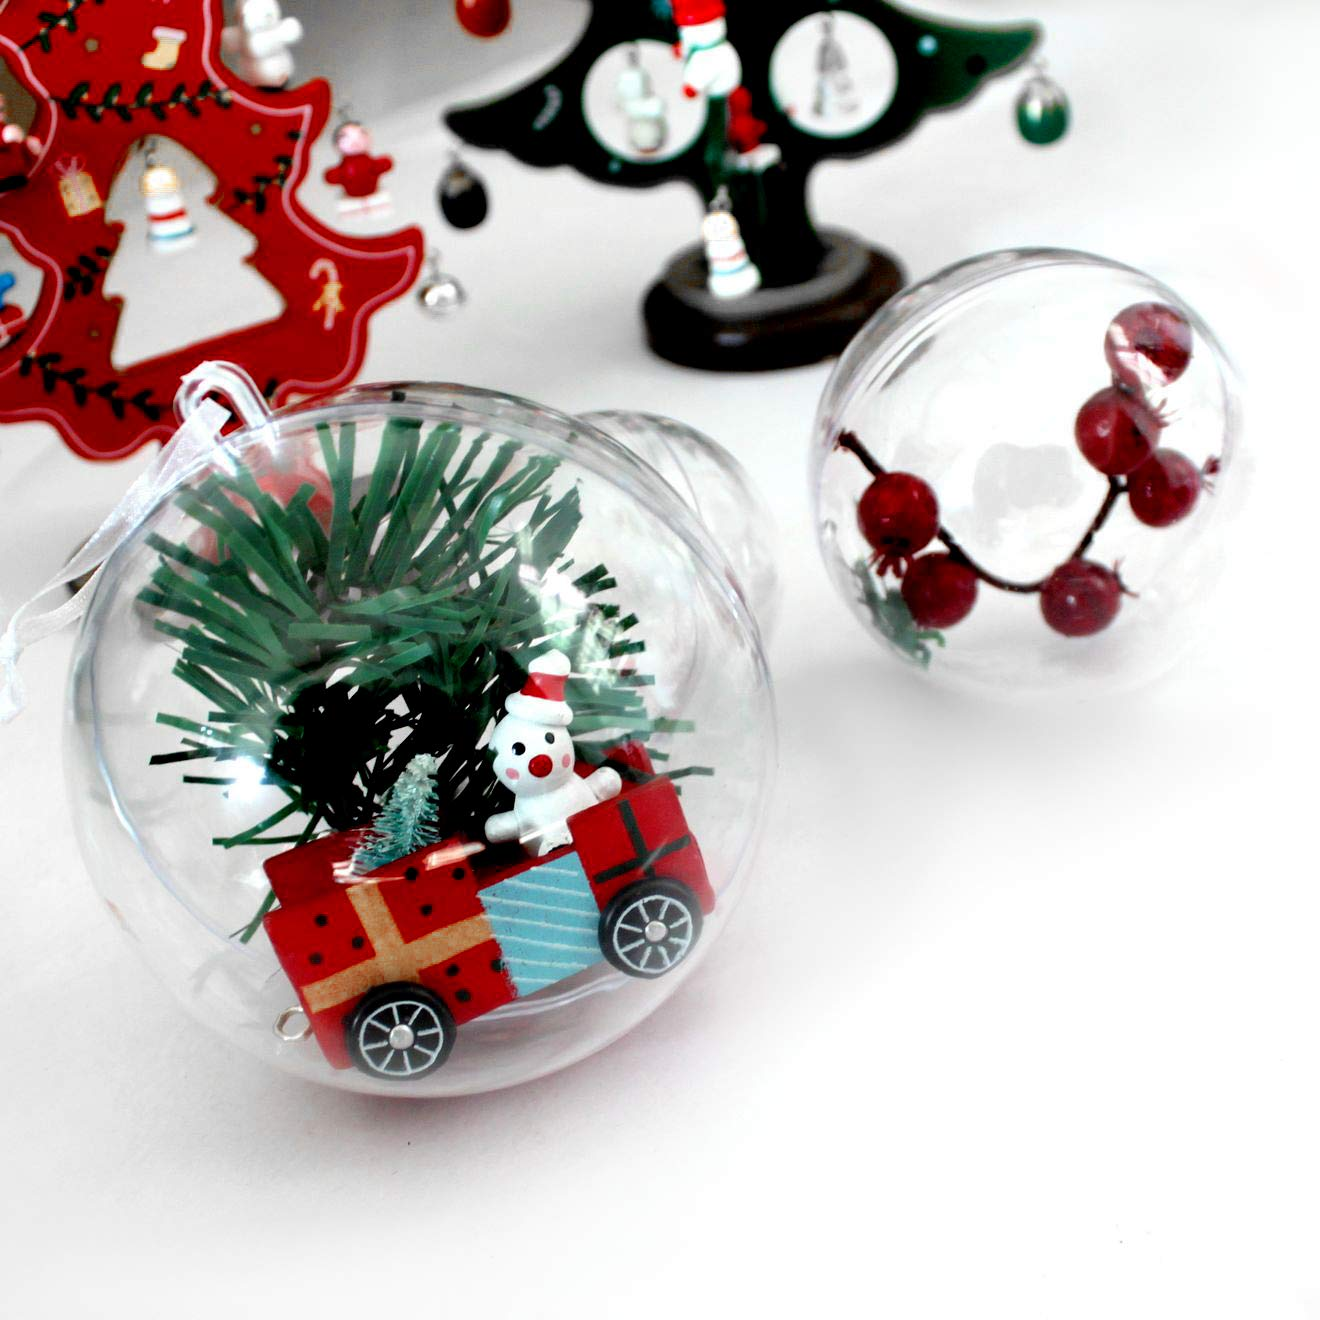 Creative Christmas Decoration Ornaments for Crafts Pack of 12 Swonuk Clear Plastic Fillable Ball Ornament Baubles SuperWiner 80mm